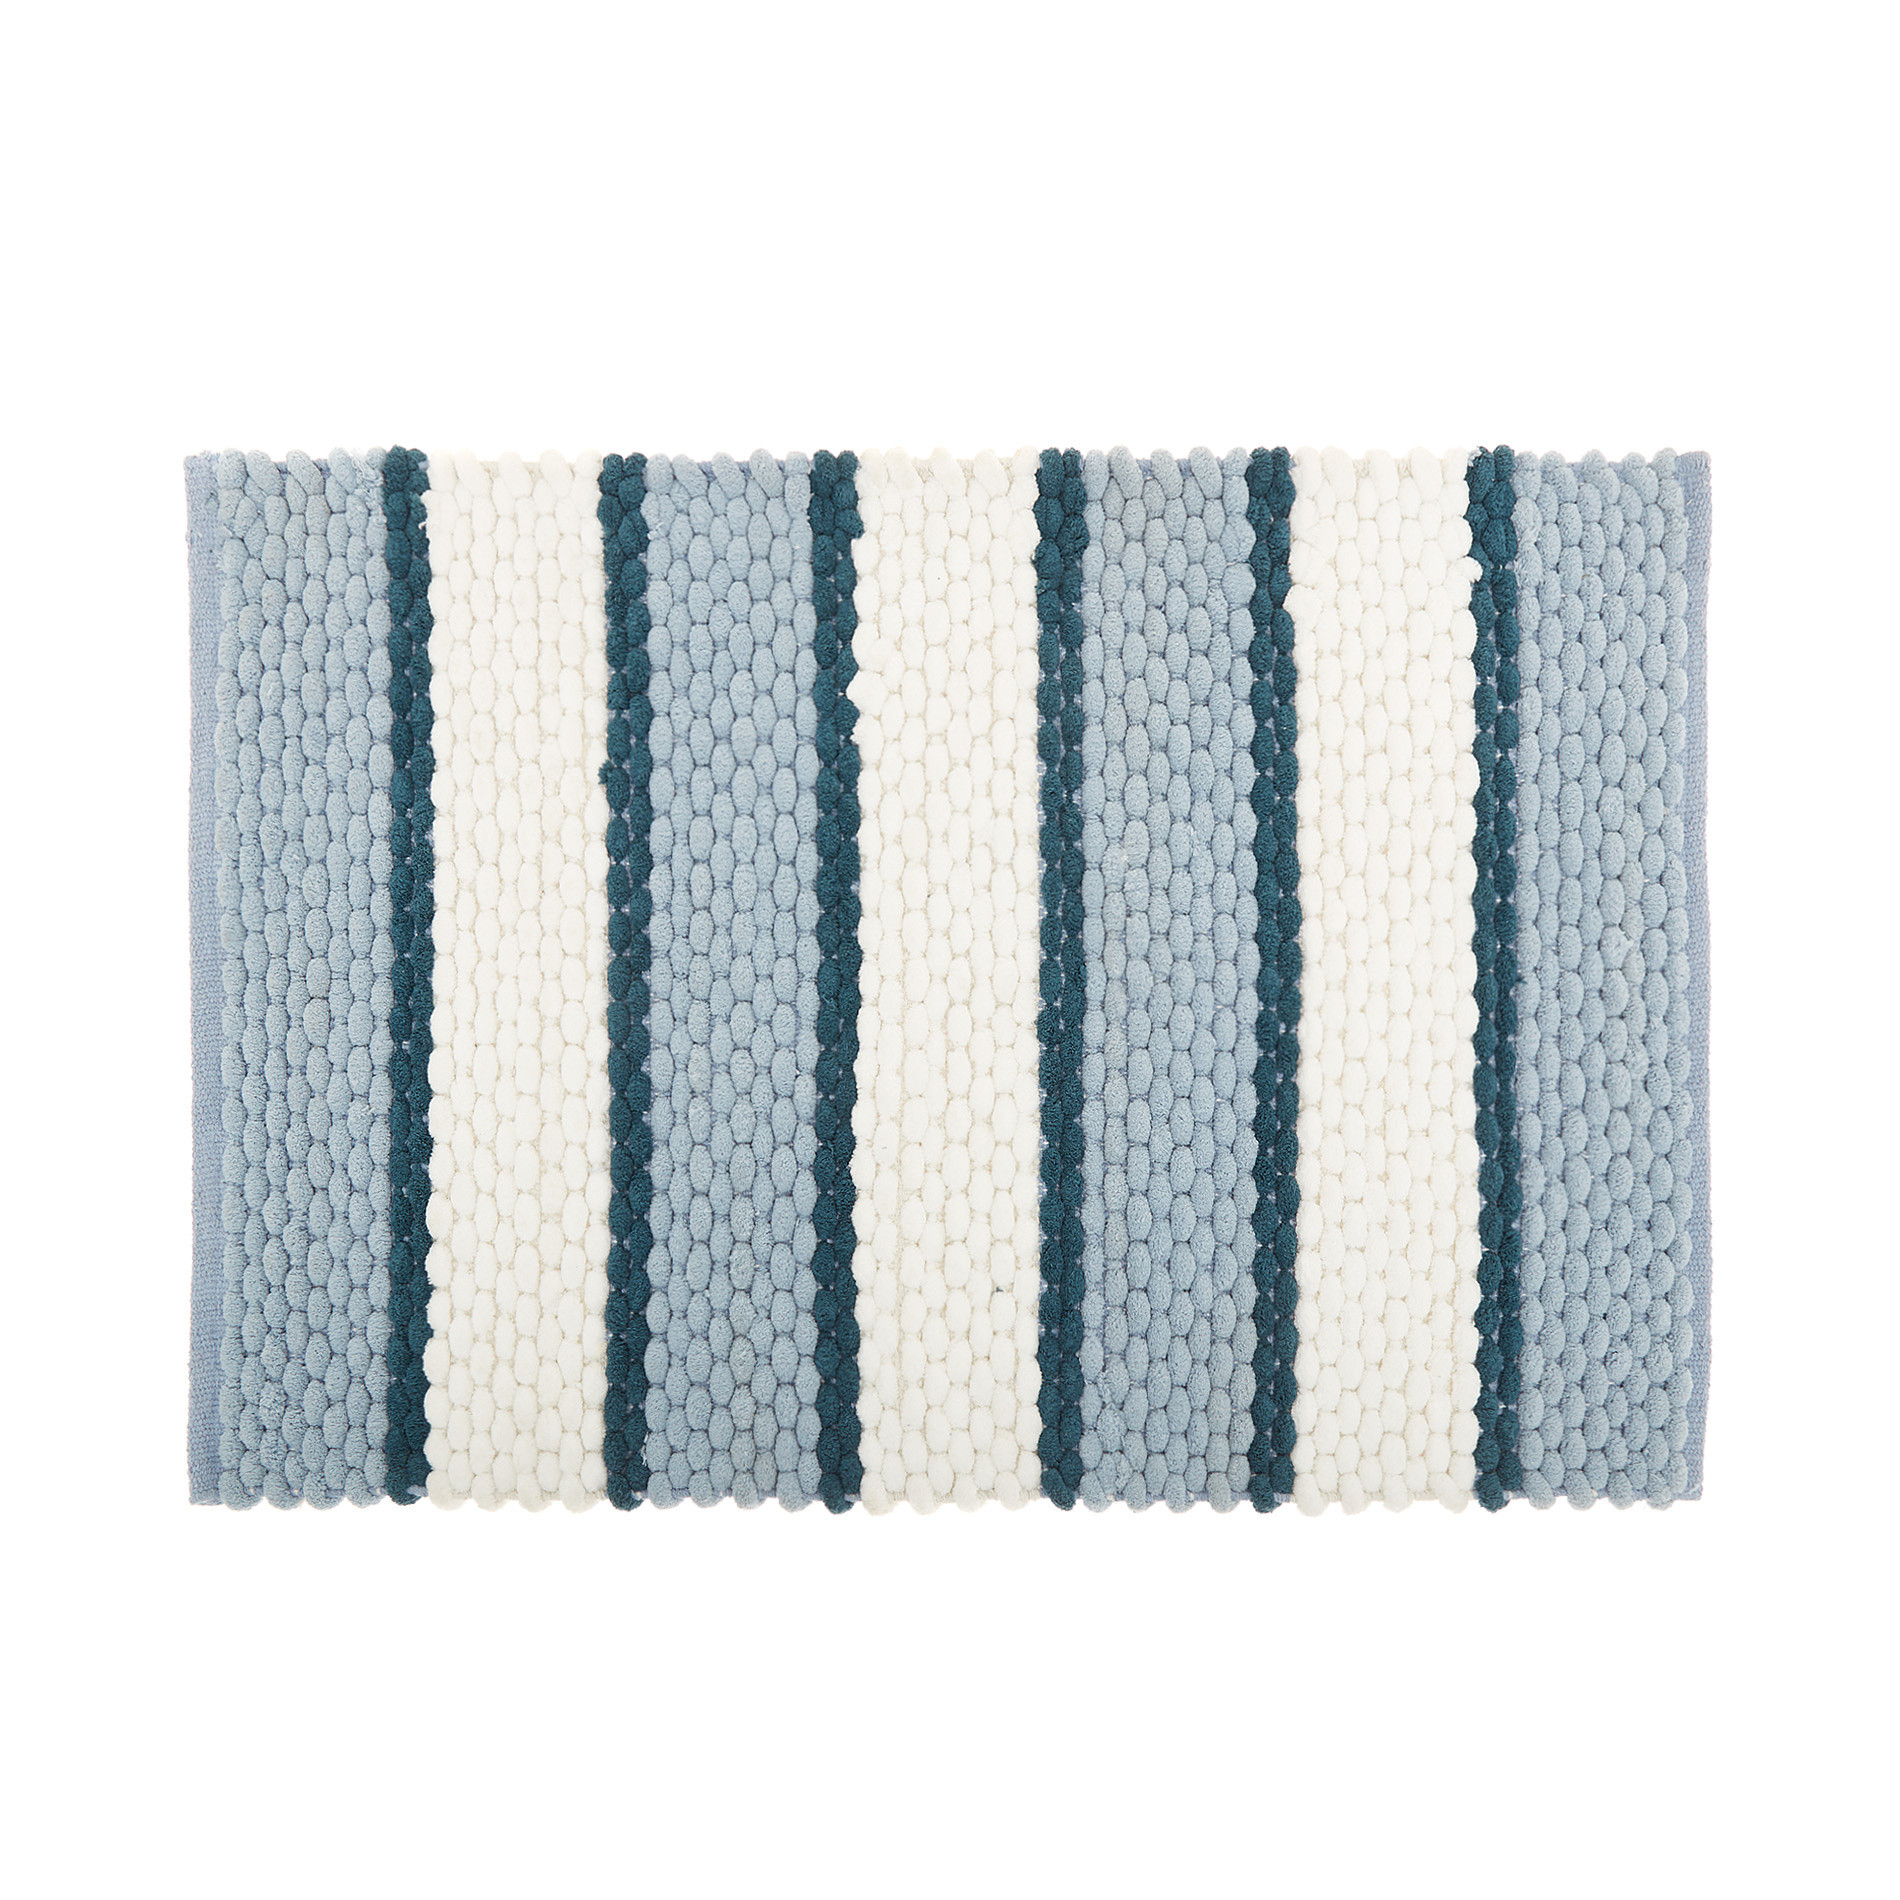 Tappeto bagno micro cotone a righe, Blu, large image number 0